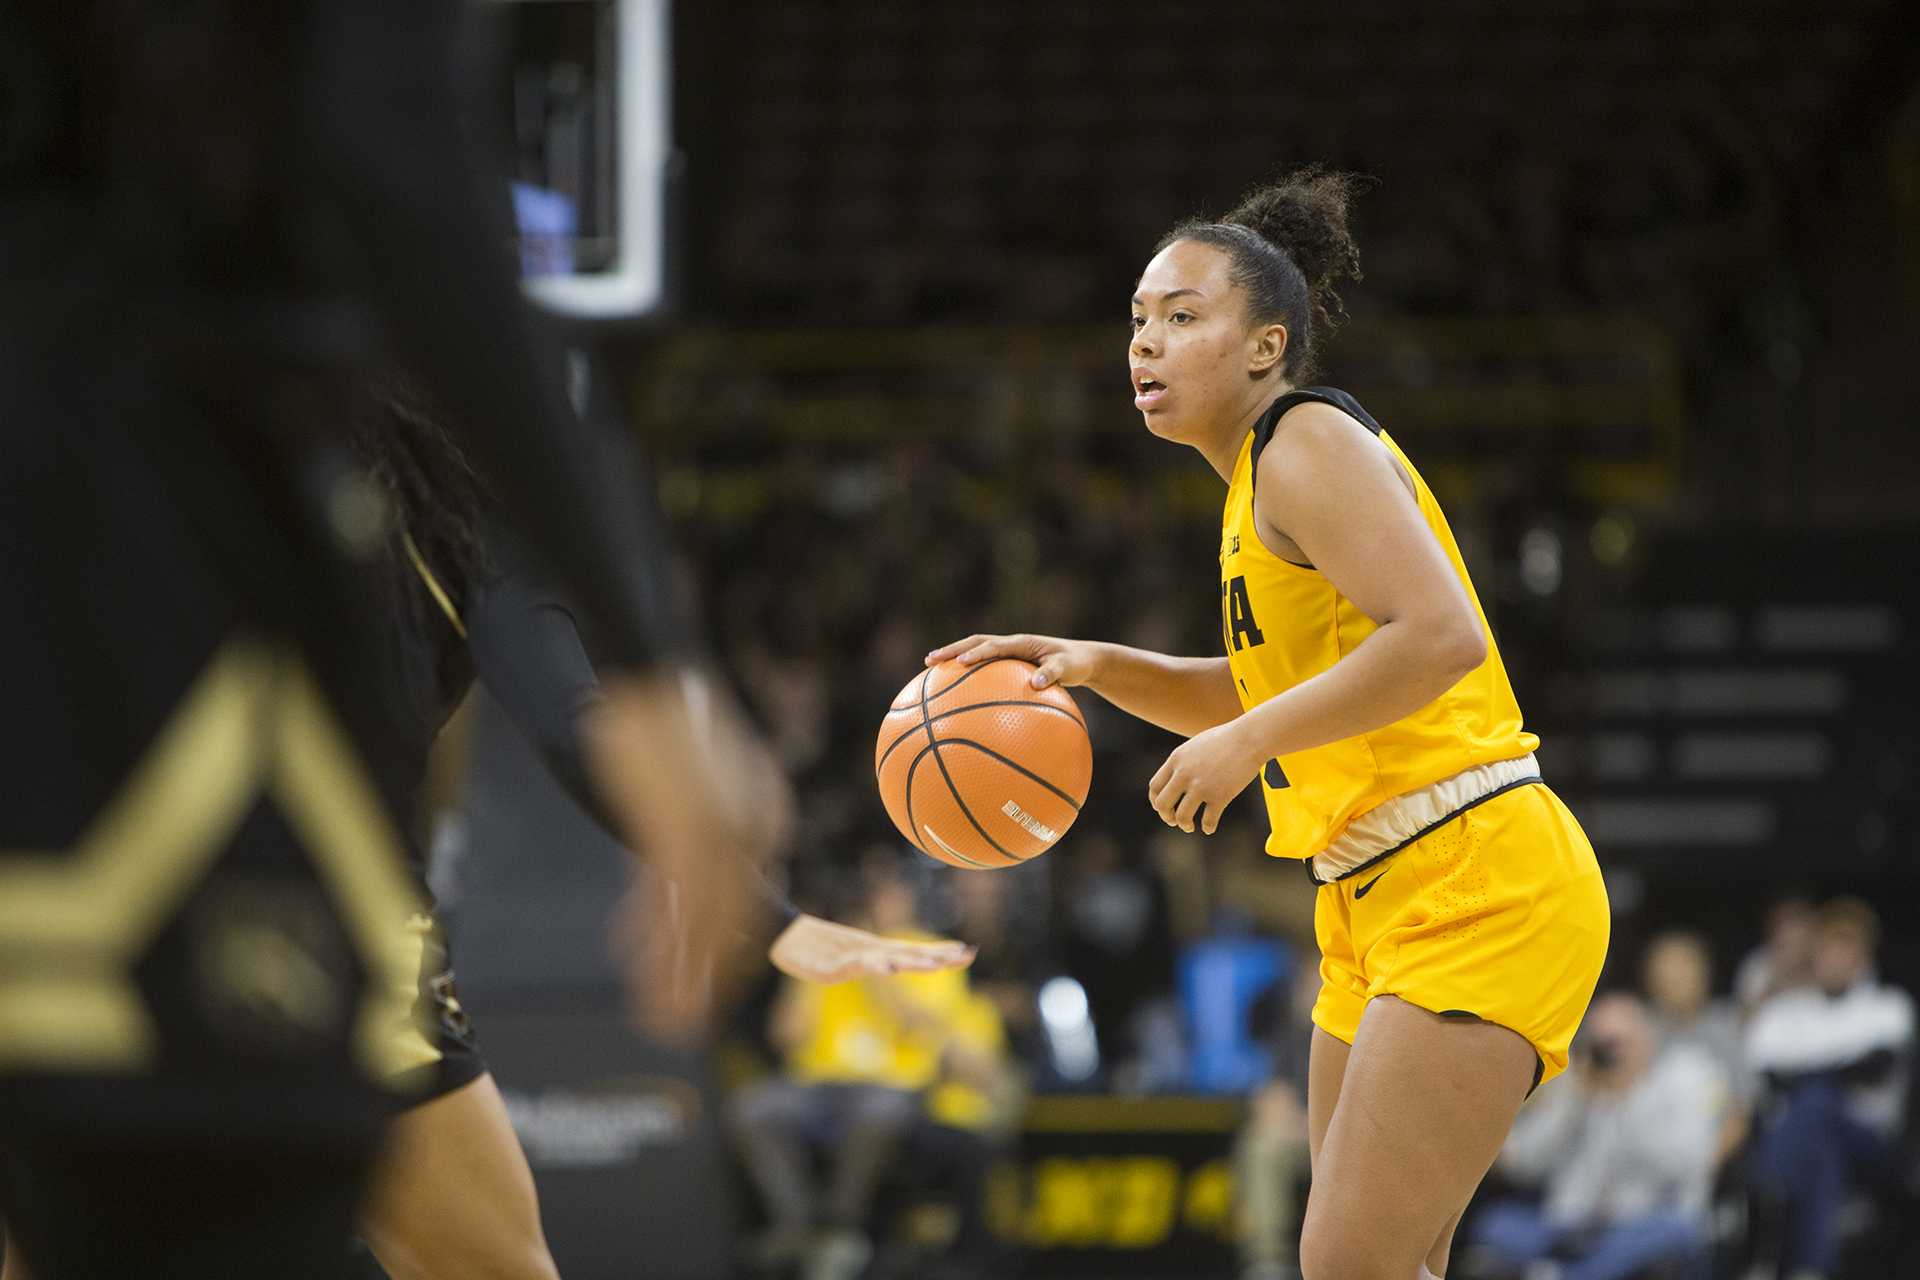 Iowa guard Alexis Sevillian dribbles during the Iowa/Western Michigan women's basketball game in Carver-Hawkeye Arena on Sunday, Nov. 19, 2017. The Hawkeyes defeated the Broncos, 79-56. (Joseph Cress/The Daily Iowan)